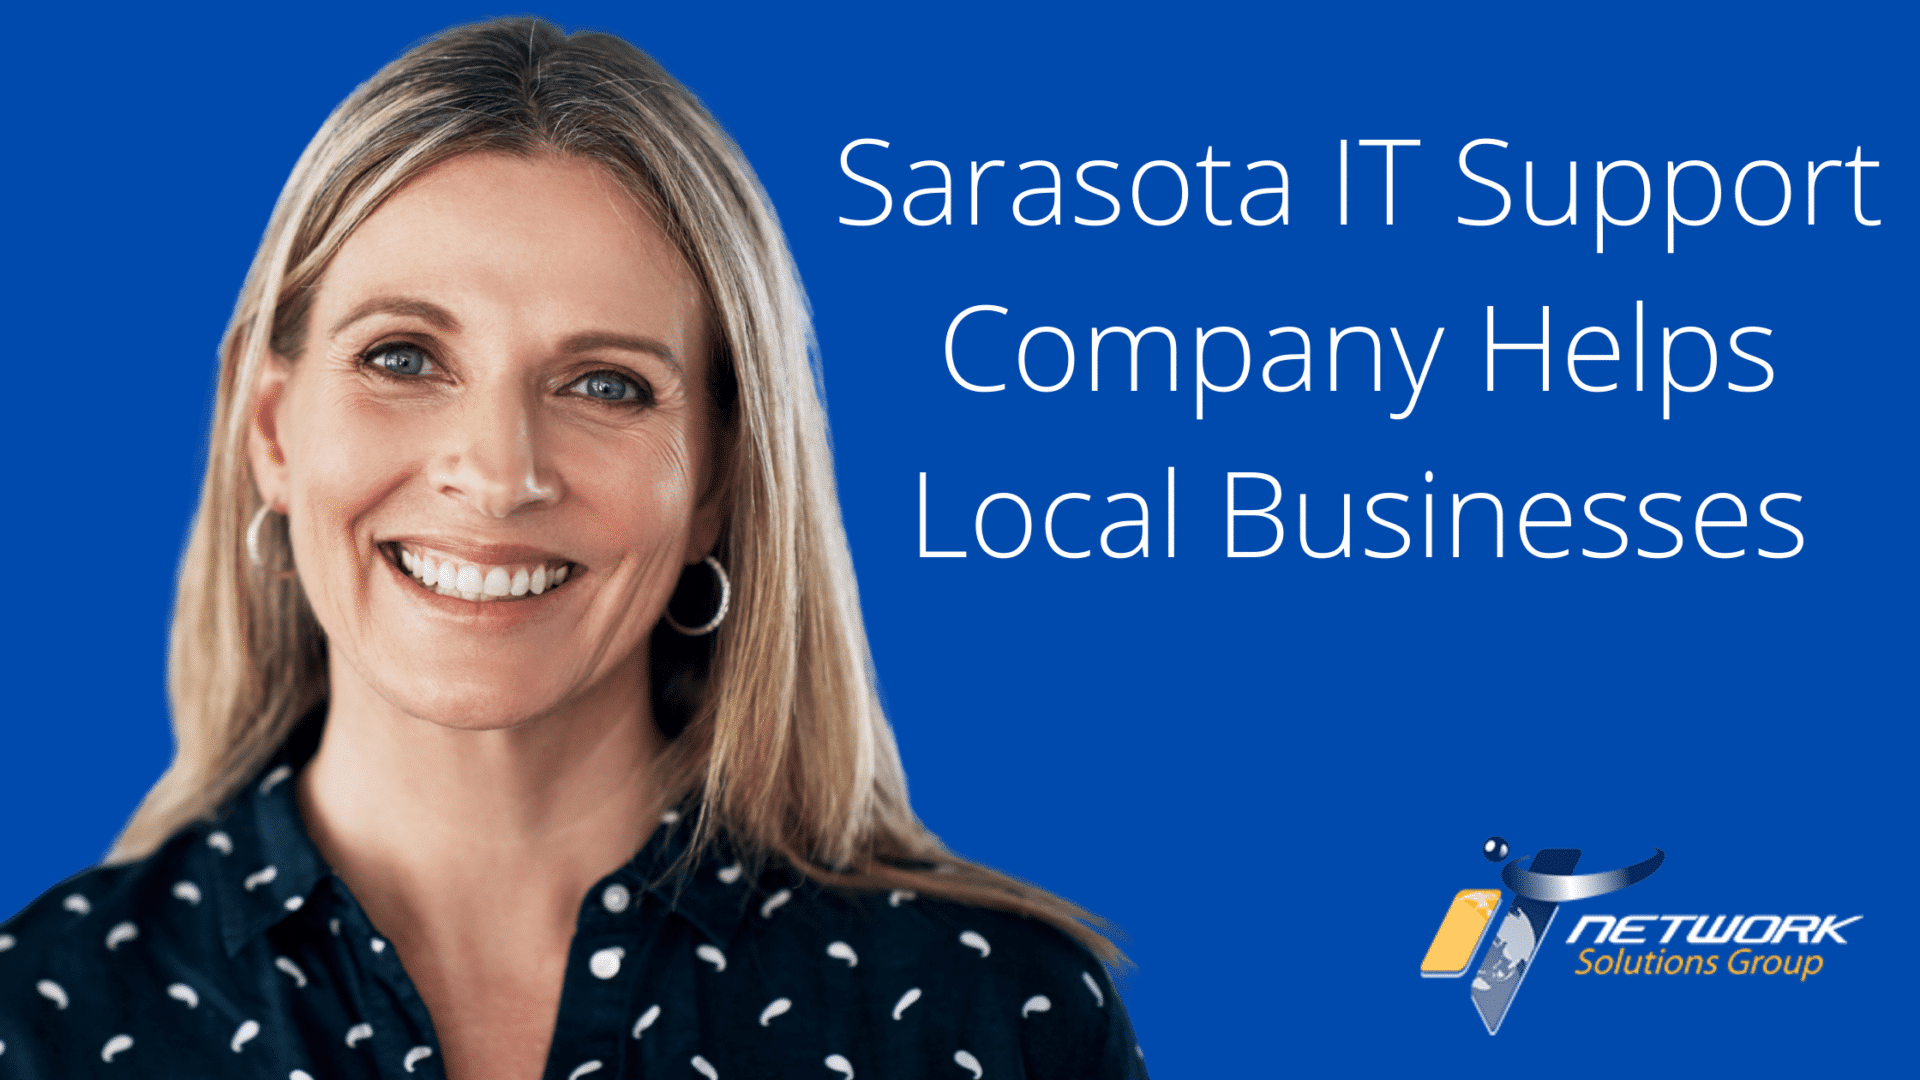 Sarasota-IT-Support-Company-Helps-Local-Businesses